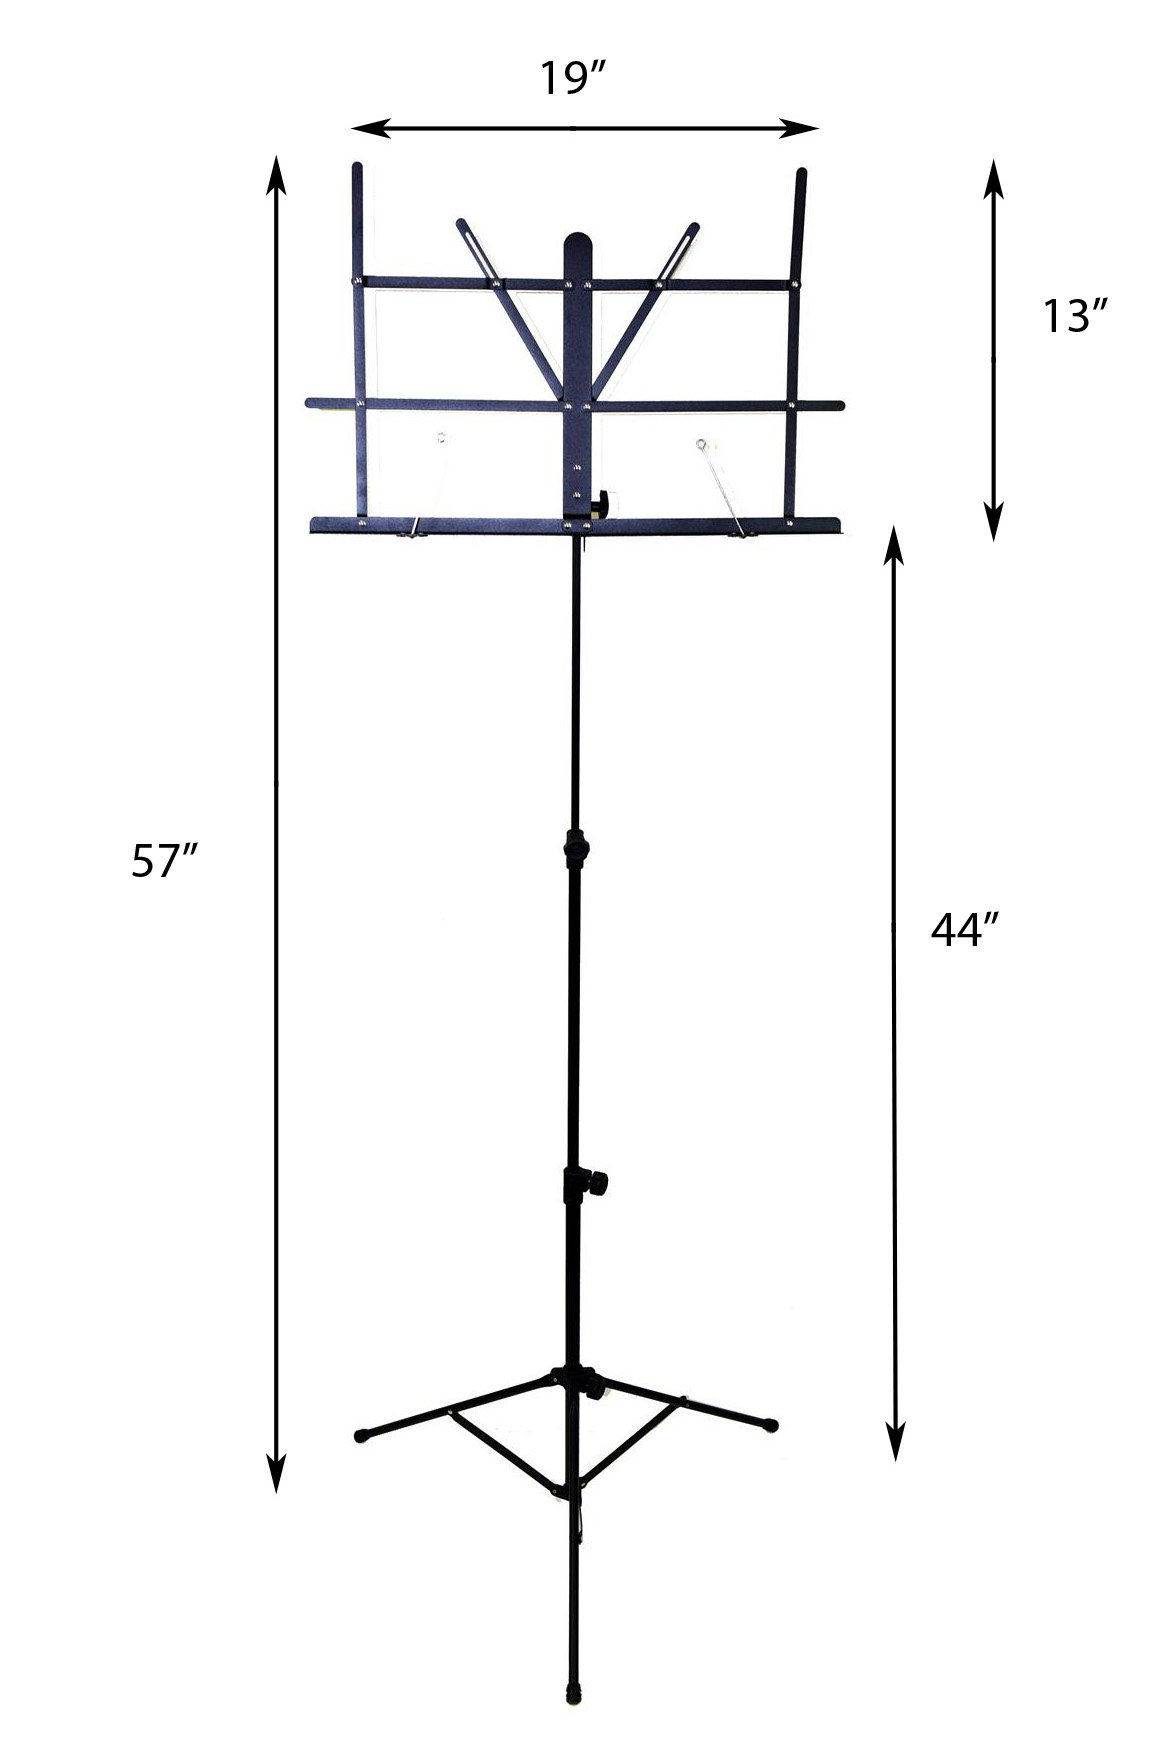 Hisonic Signature Series 7121 Two Section Folding Music Stand with Carrying Bag by Signature Music Instruments (Image #1)